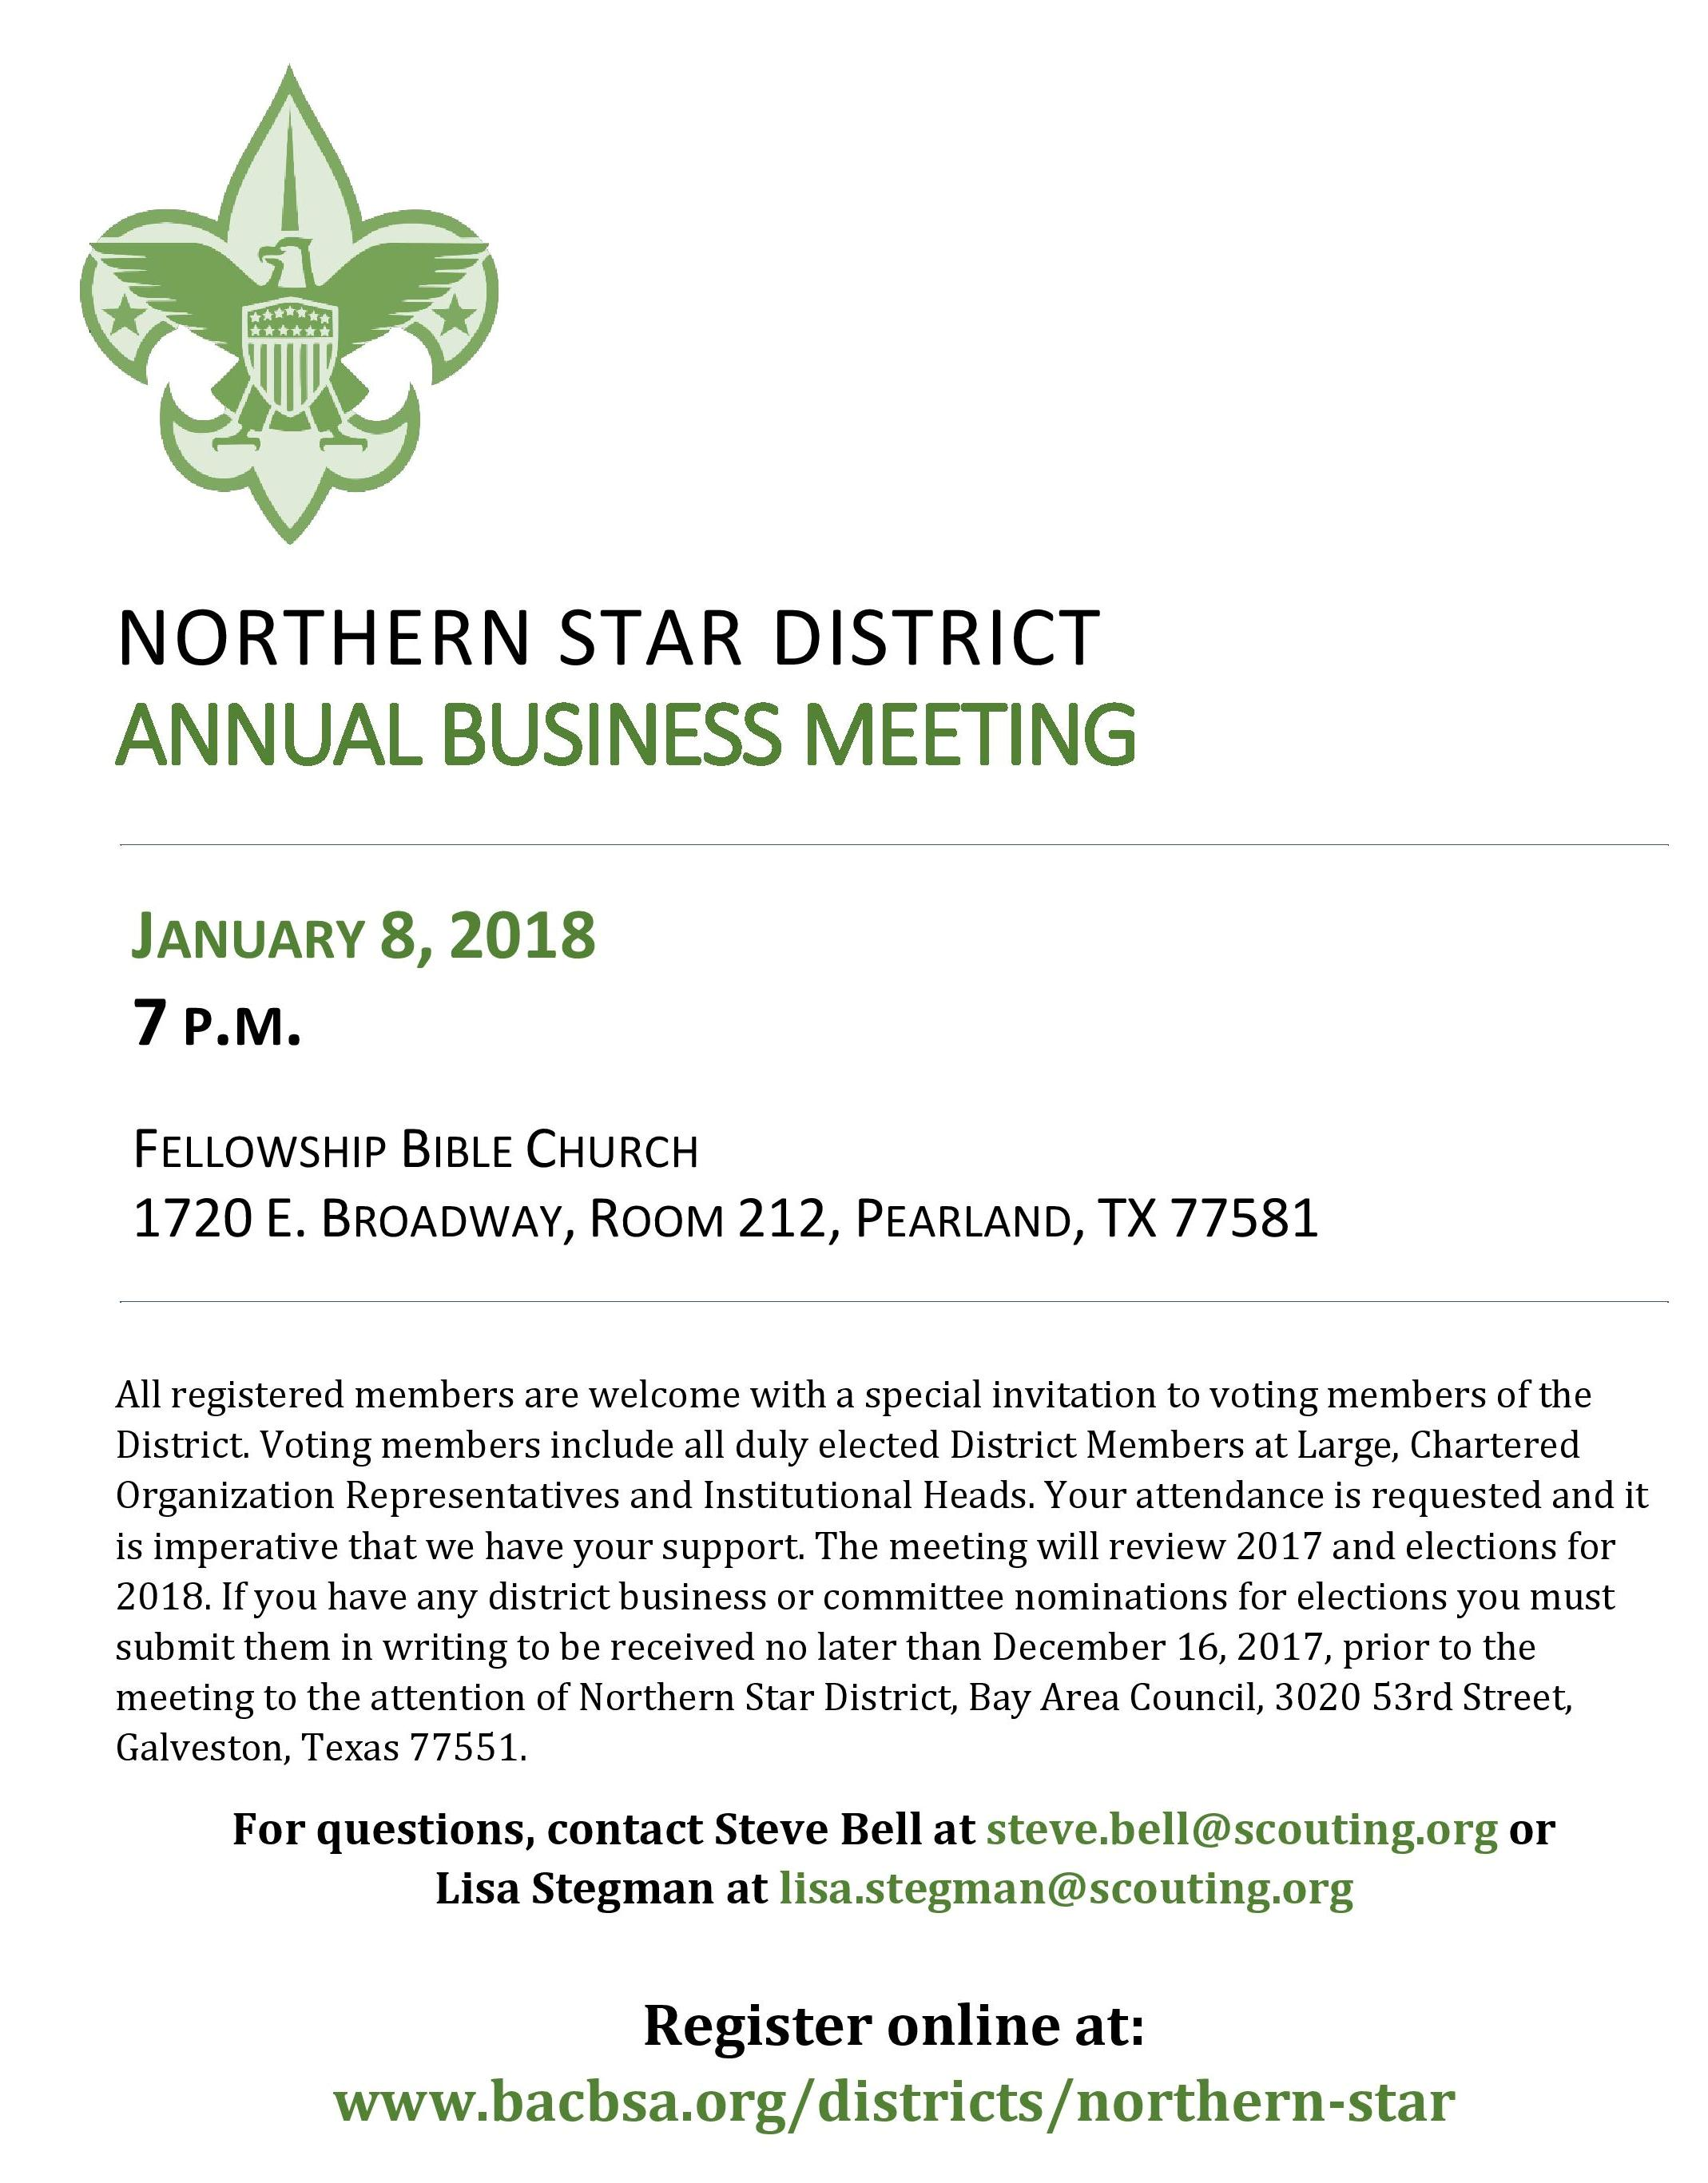 Northern Star Annual Business Meeting